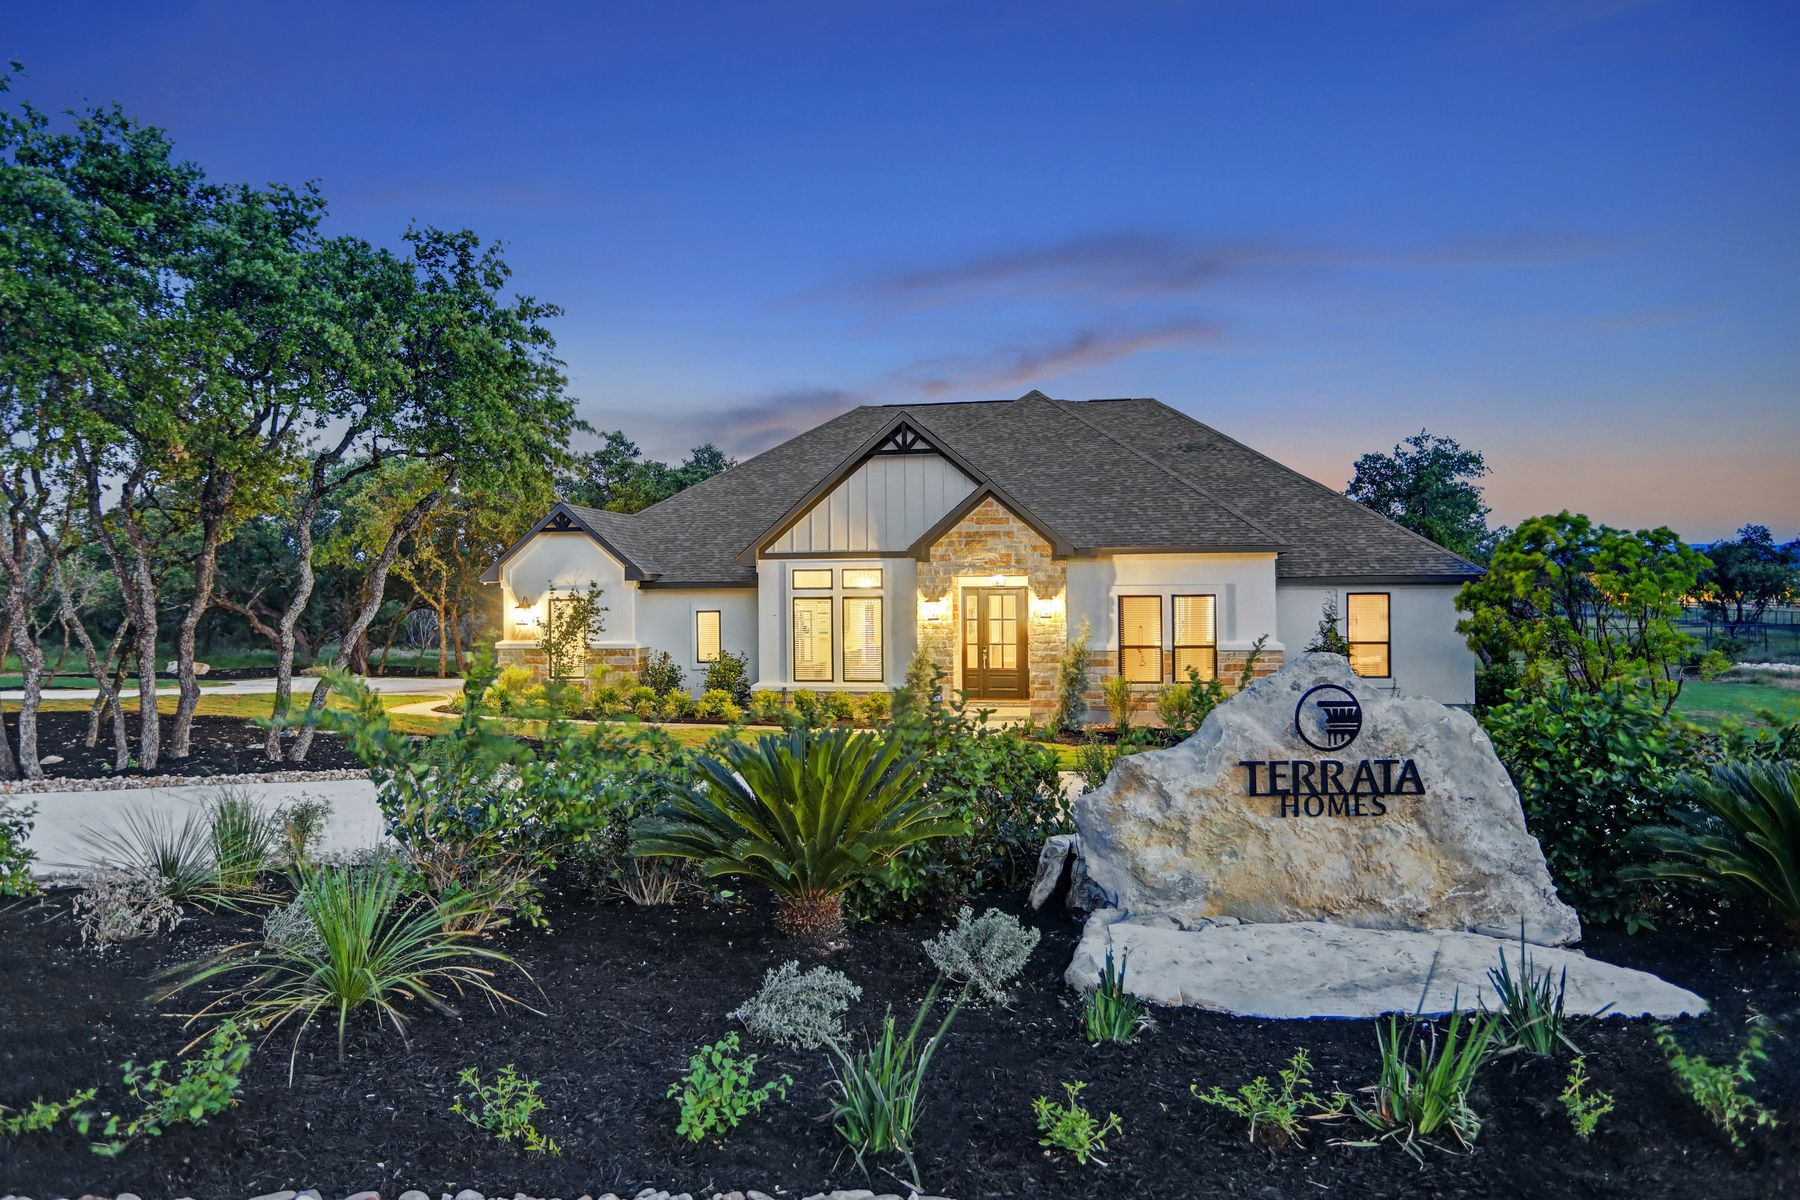 Spicewood Trails:Schedule your tour at Spicewood Trails today!